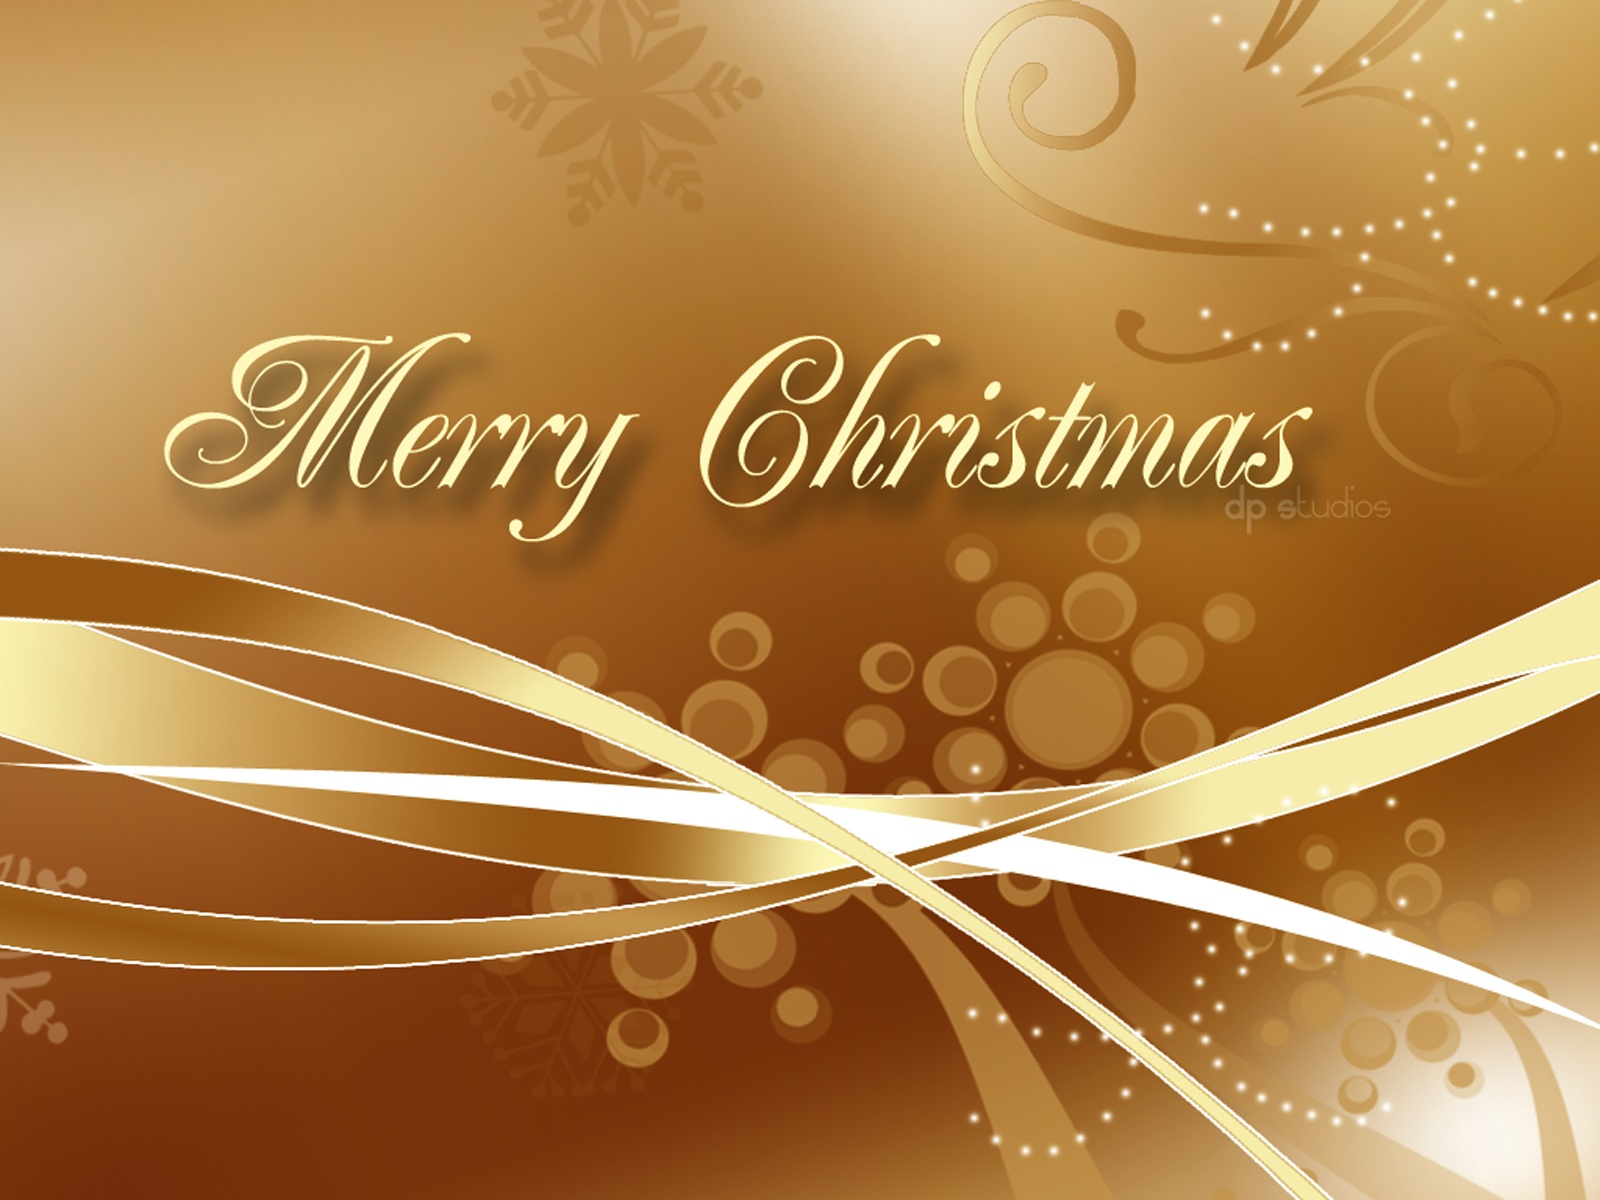 happy merry christmas 2011 2012happy merry christmas 2011 2012 merry christmas day merry christmas day 2012 merry christmas day 2011